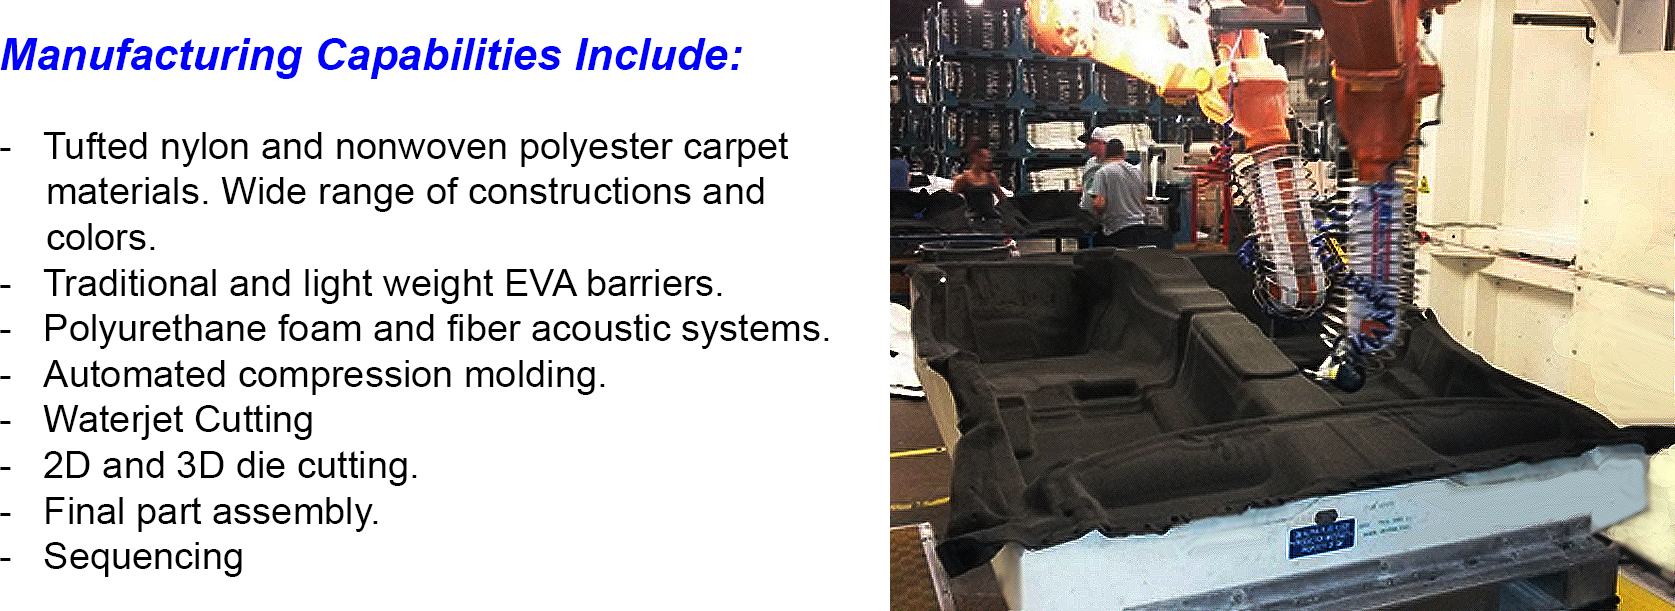 carpetmanufacturingcapabilities